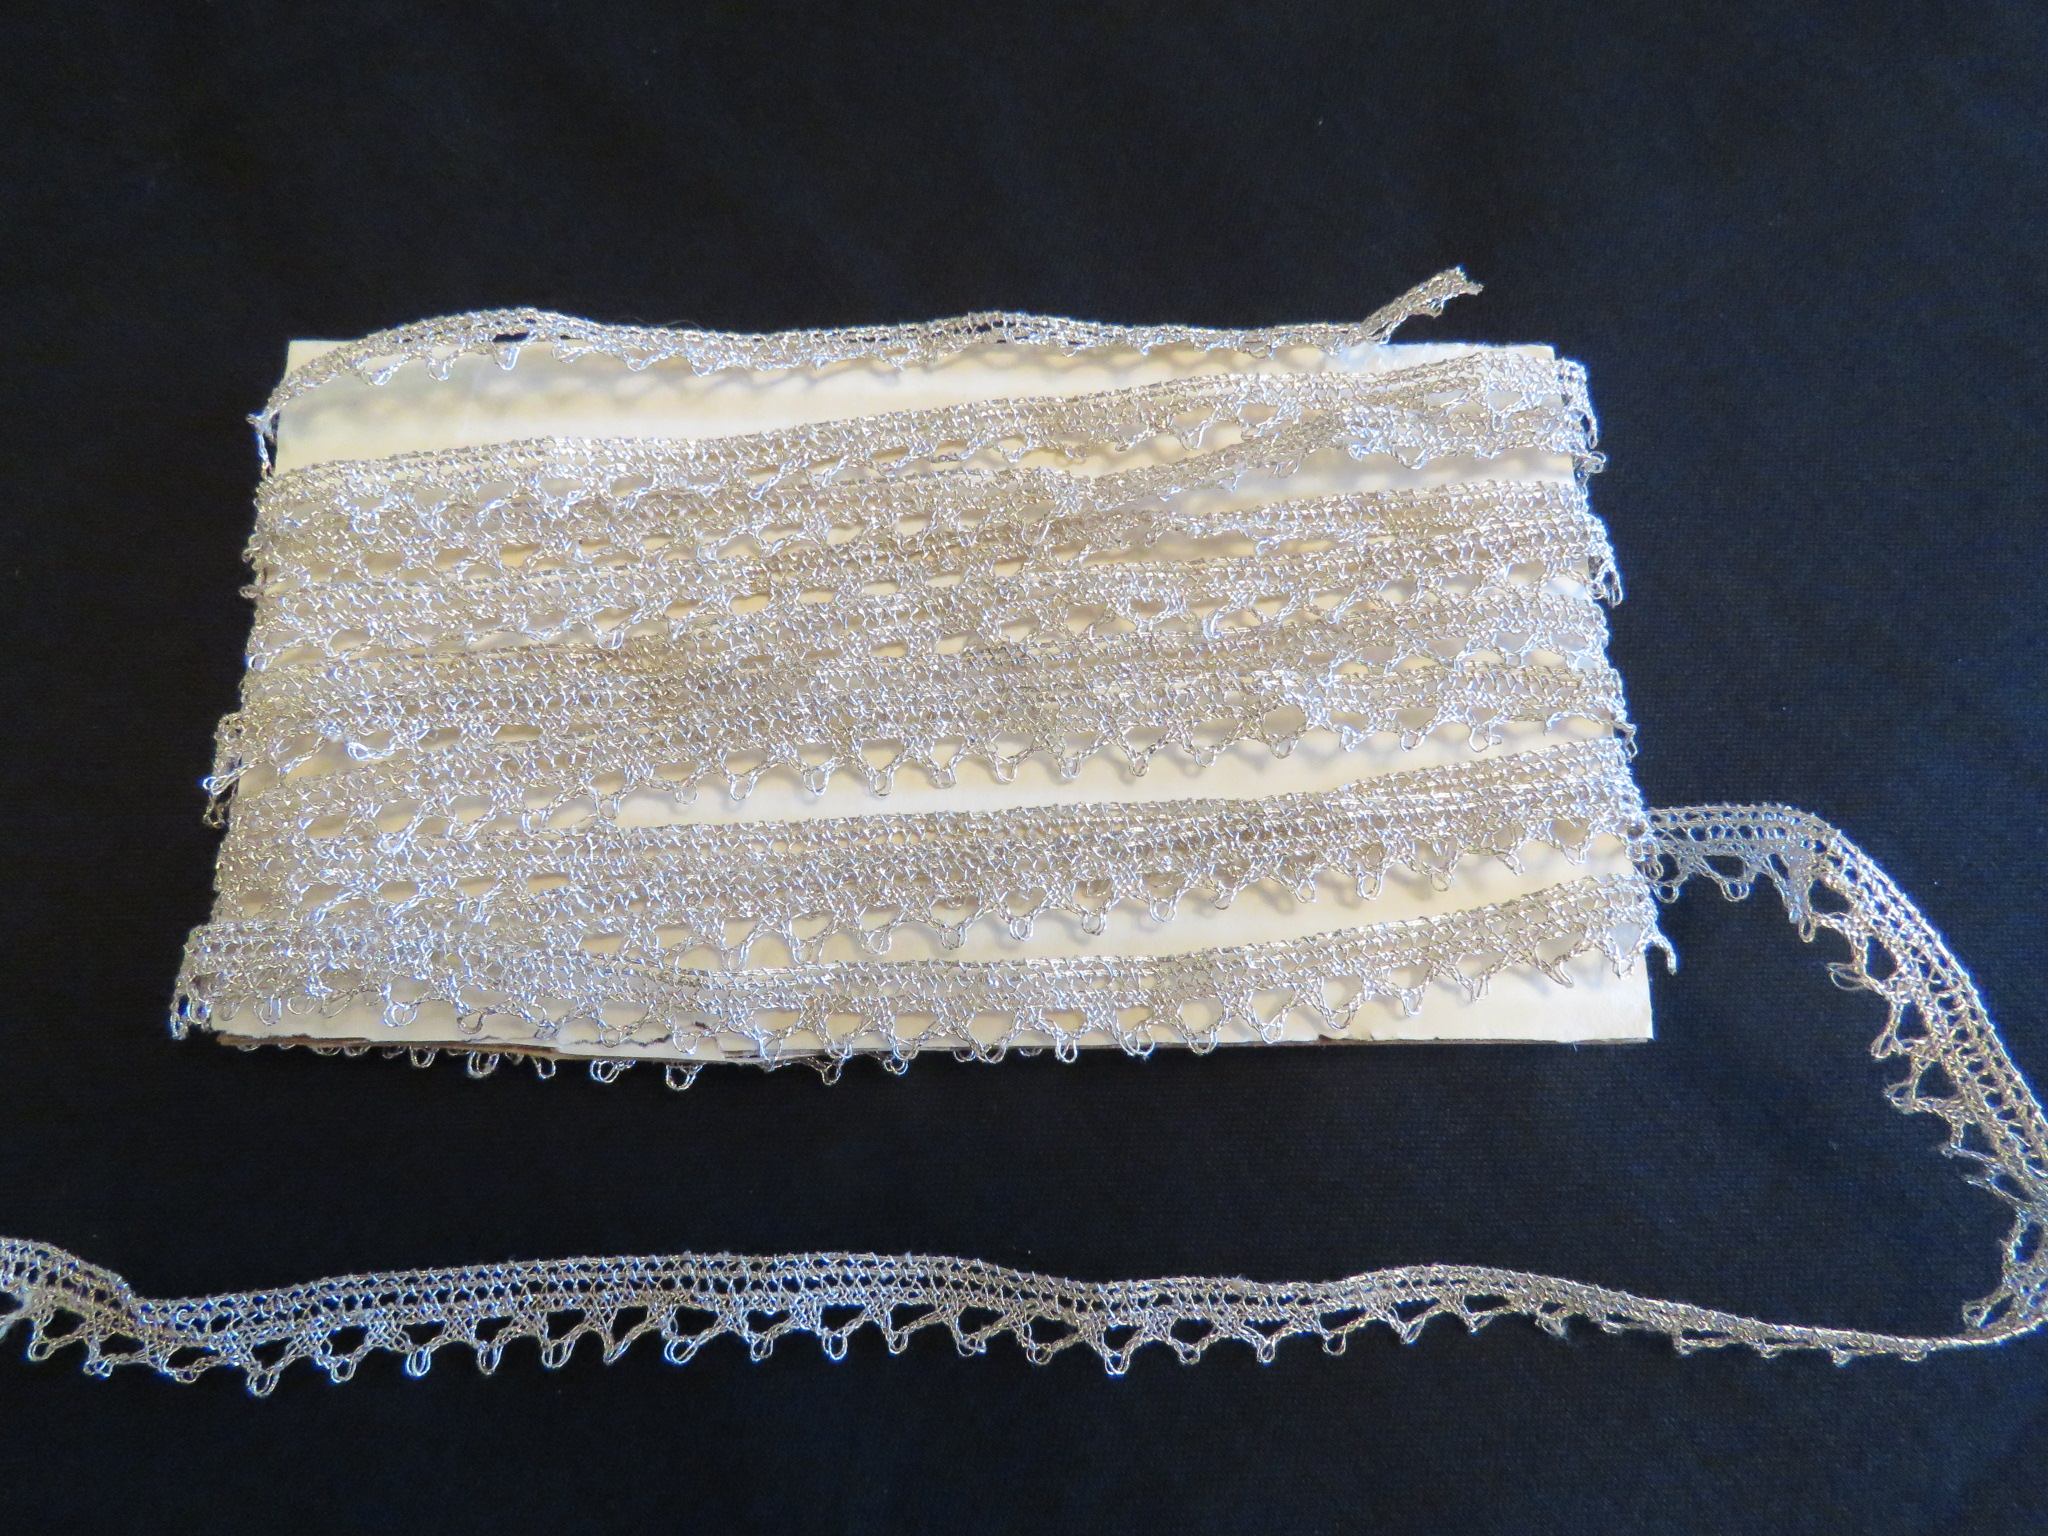 Antique Lace Trim Metallic Silver French Metal Passementerie Picot Pointed Edge (LAC-301) in Lace